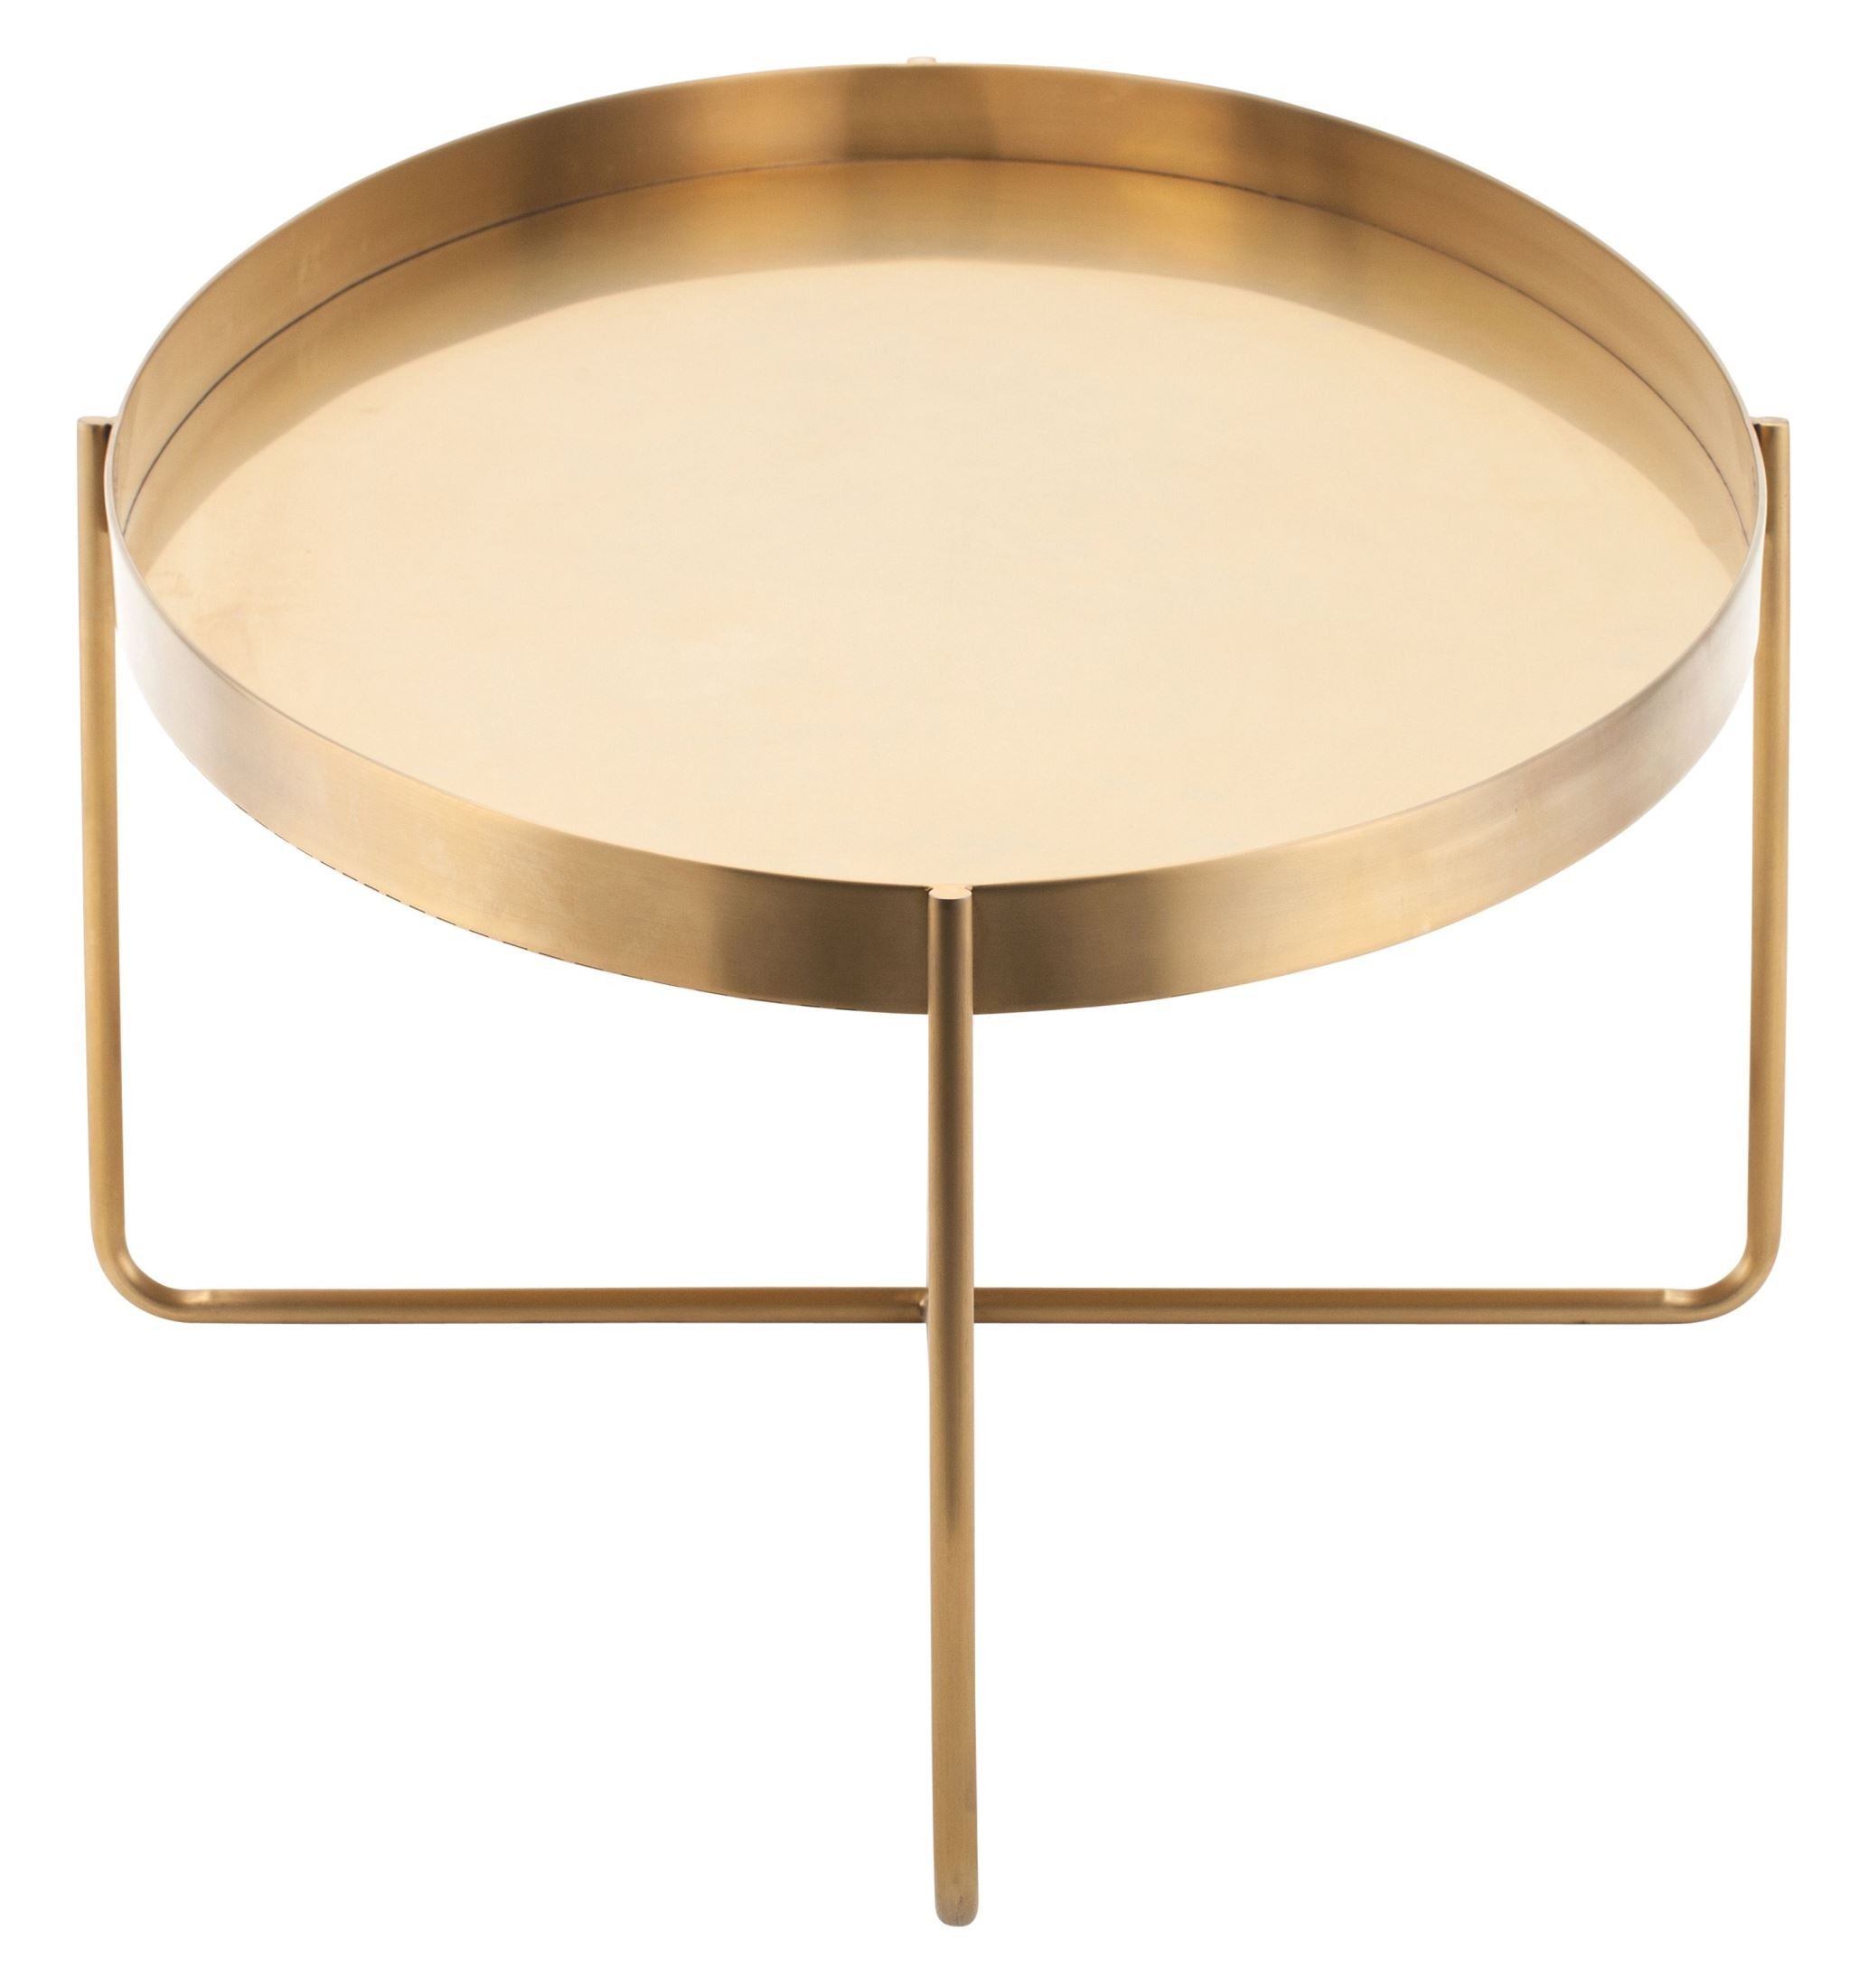 Gaultier 54 gold metal coffee table hgde130 nuevo Gold metal coffee table